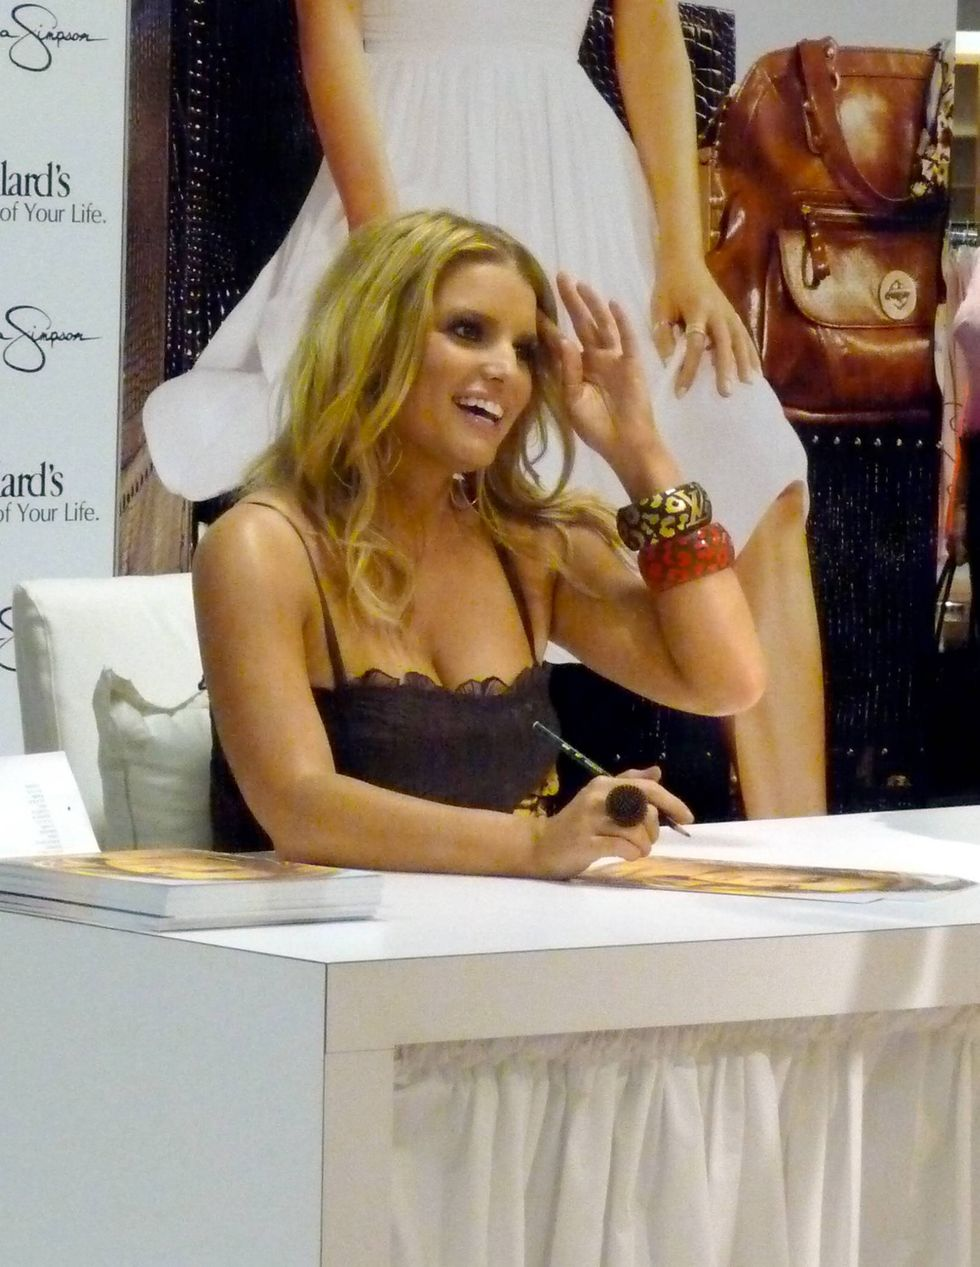 jessica-simpson-at-a-dilliards-department-store-in-scottsdale-13